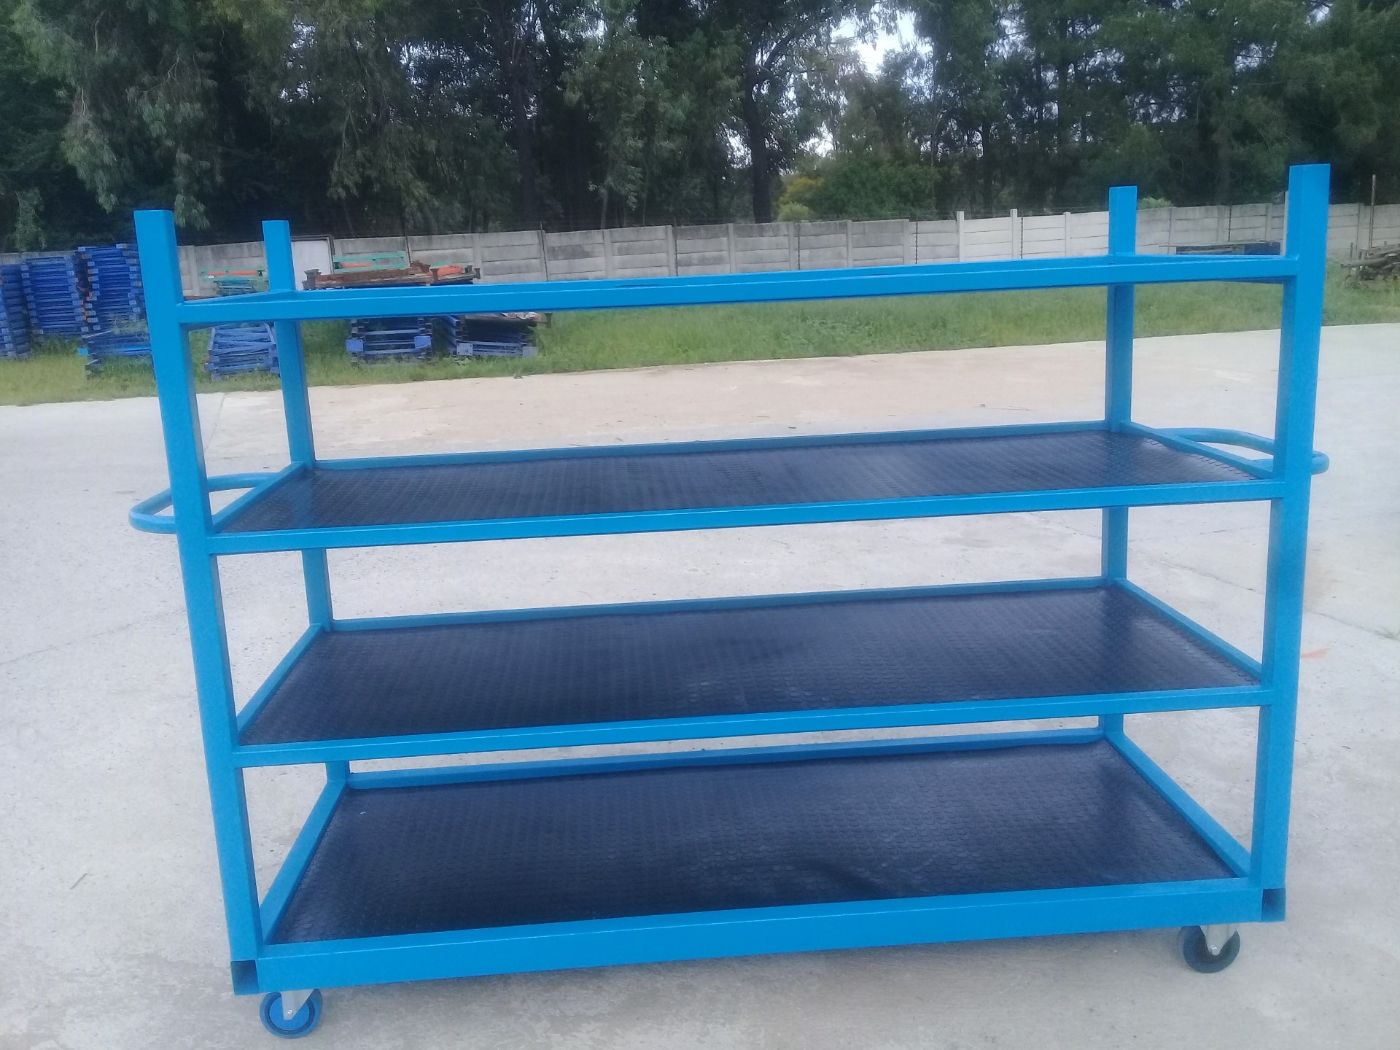 Shelf Rack, New And Used Racking, Beams, Frames, Pallets, Decks, New And Used Shelving, Small Parts Storage Systems, Mezzanine Floors, Work Benches And Automobile Assembly Line Parts Trolleys